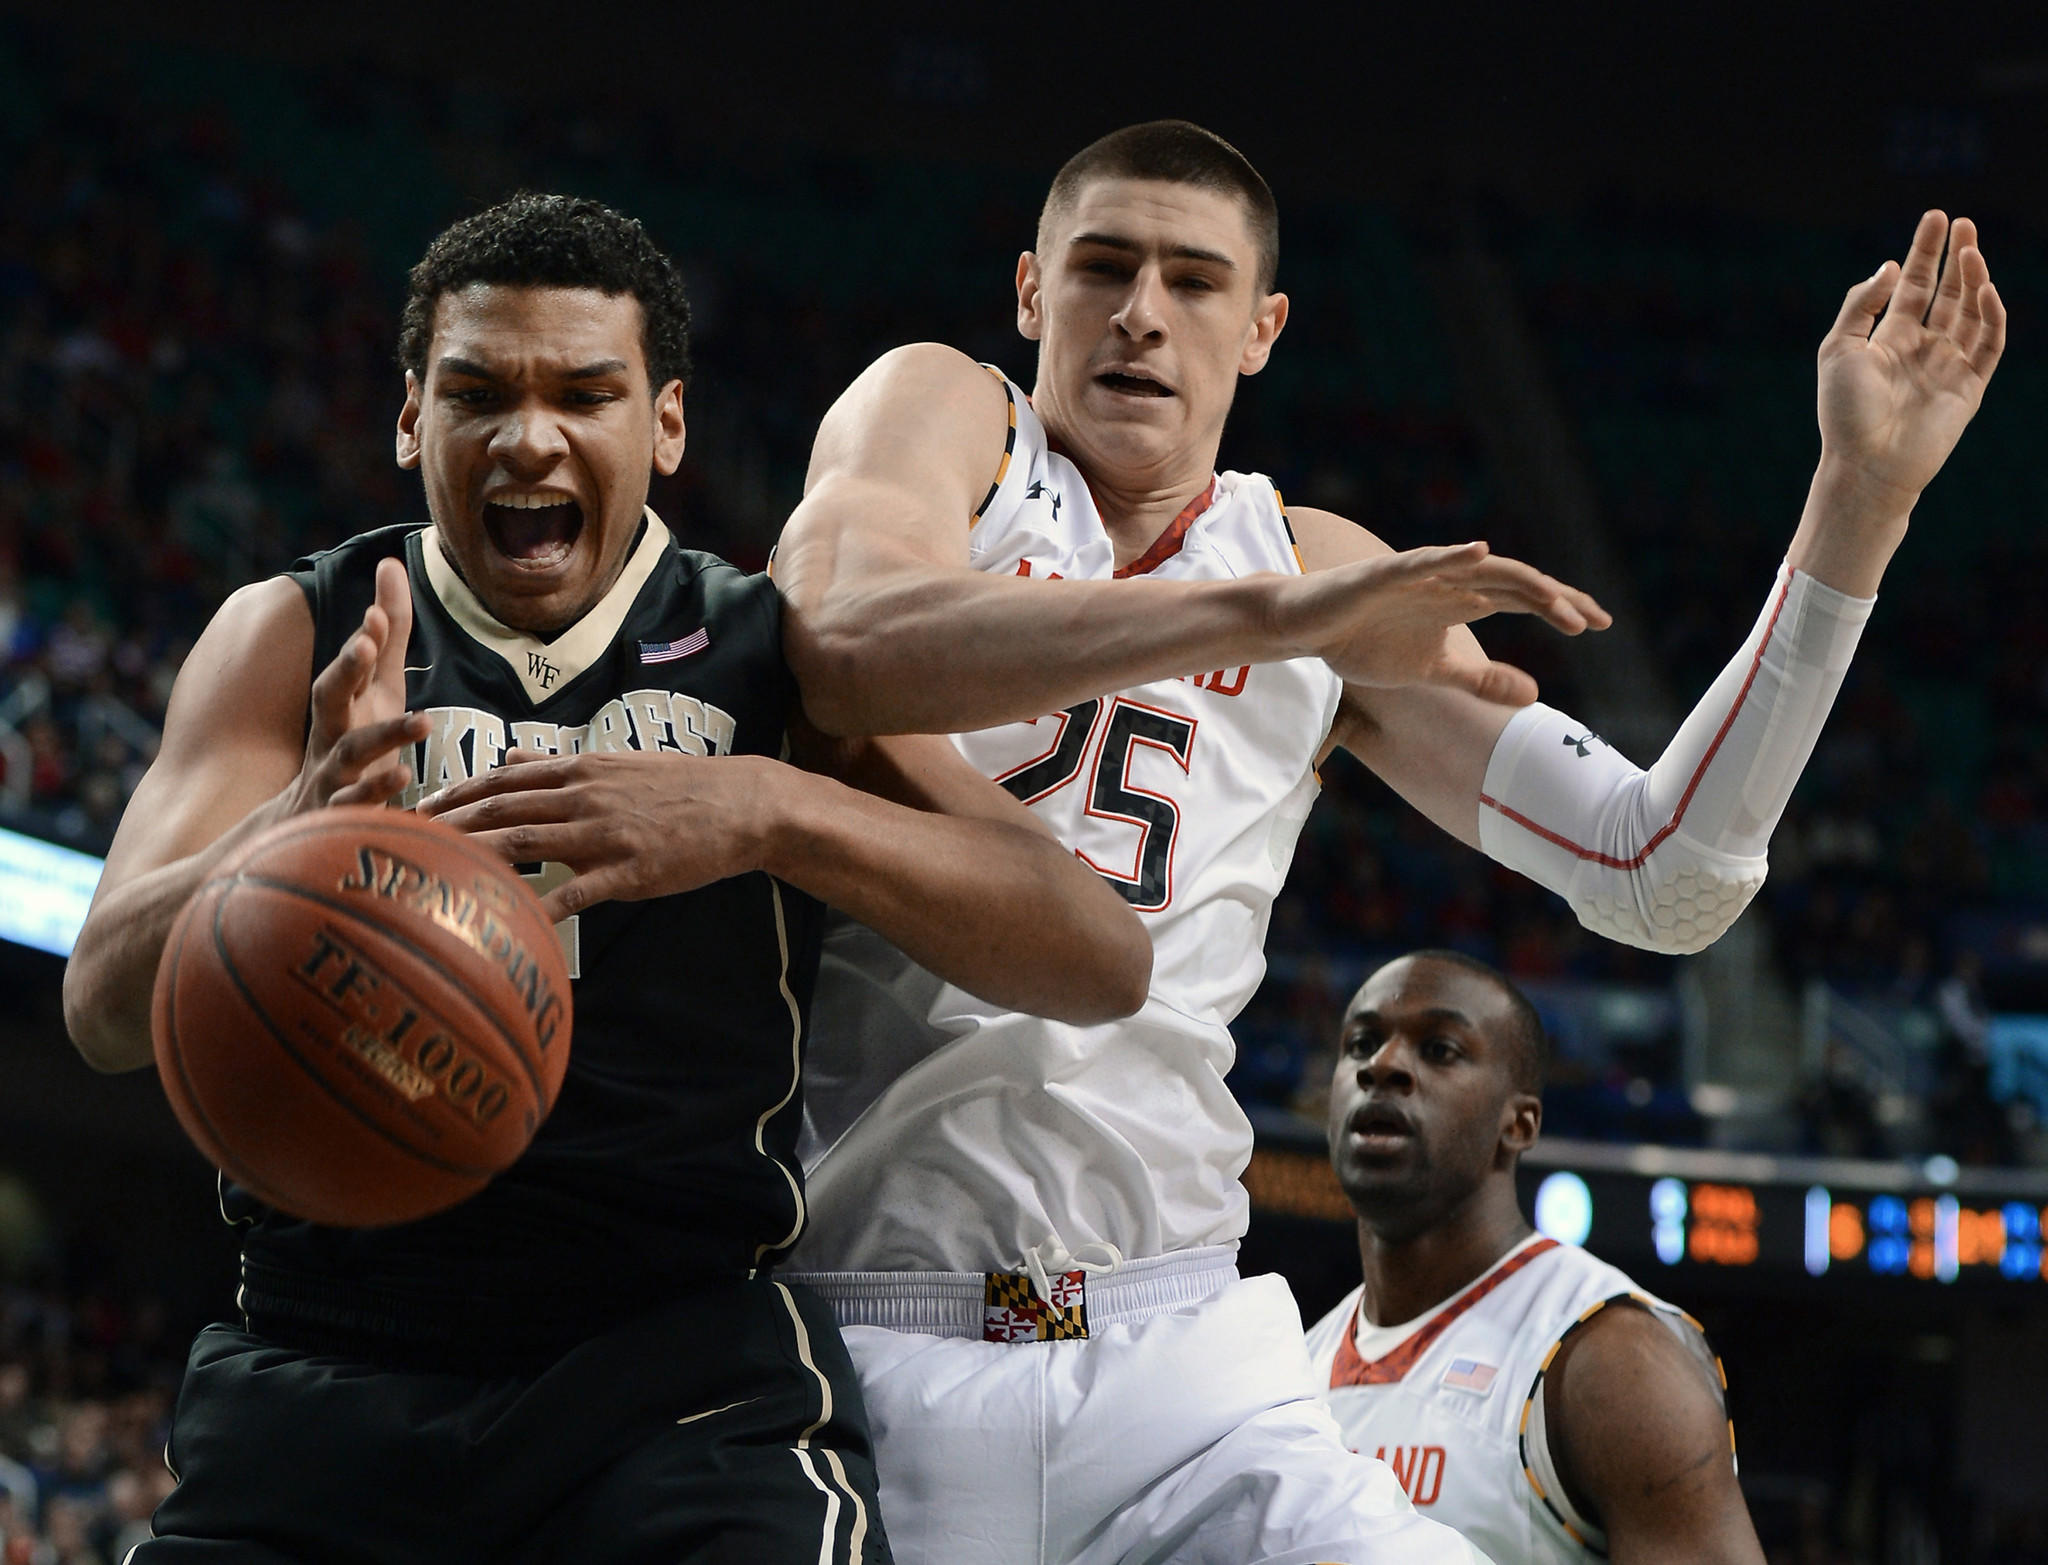 Wake Forest's Devin Thomas went toe-to-toe with Alex Len on multiple occasions as a freshman last season.